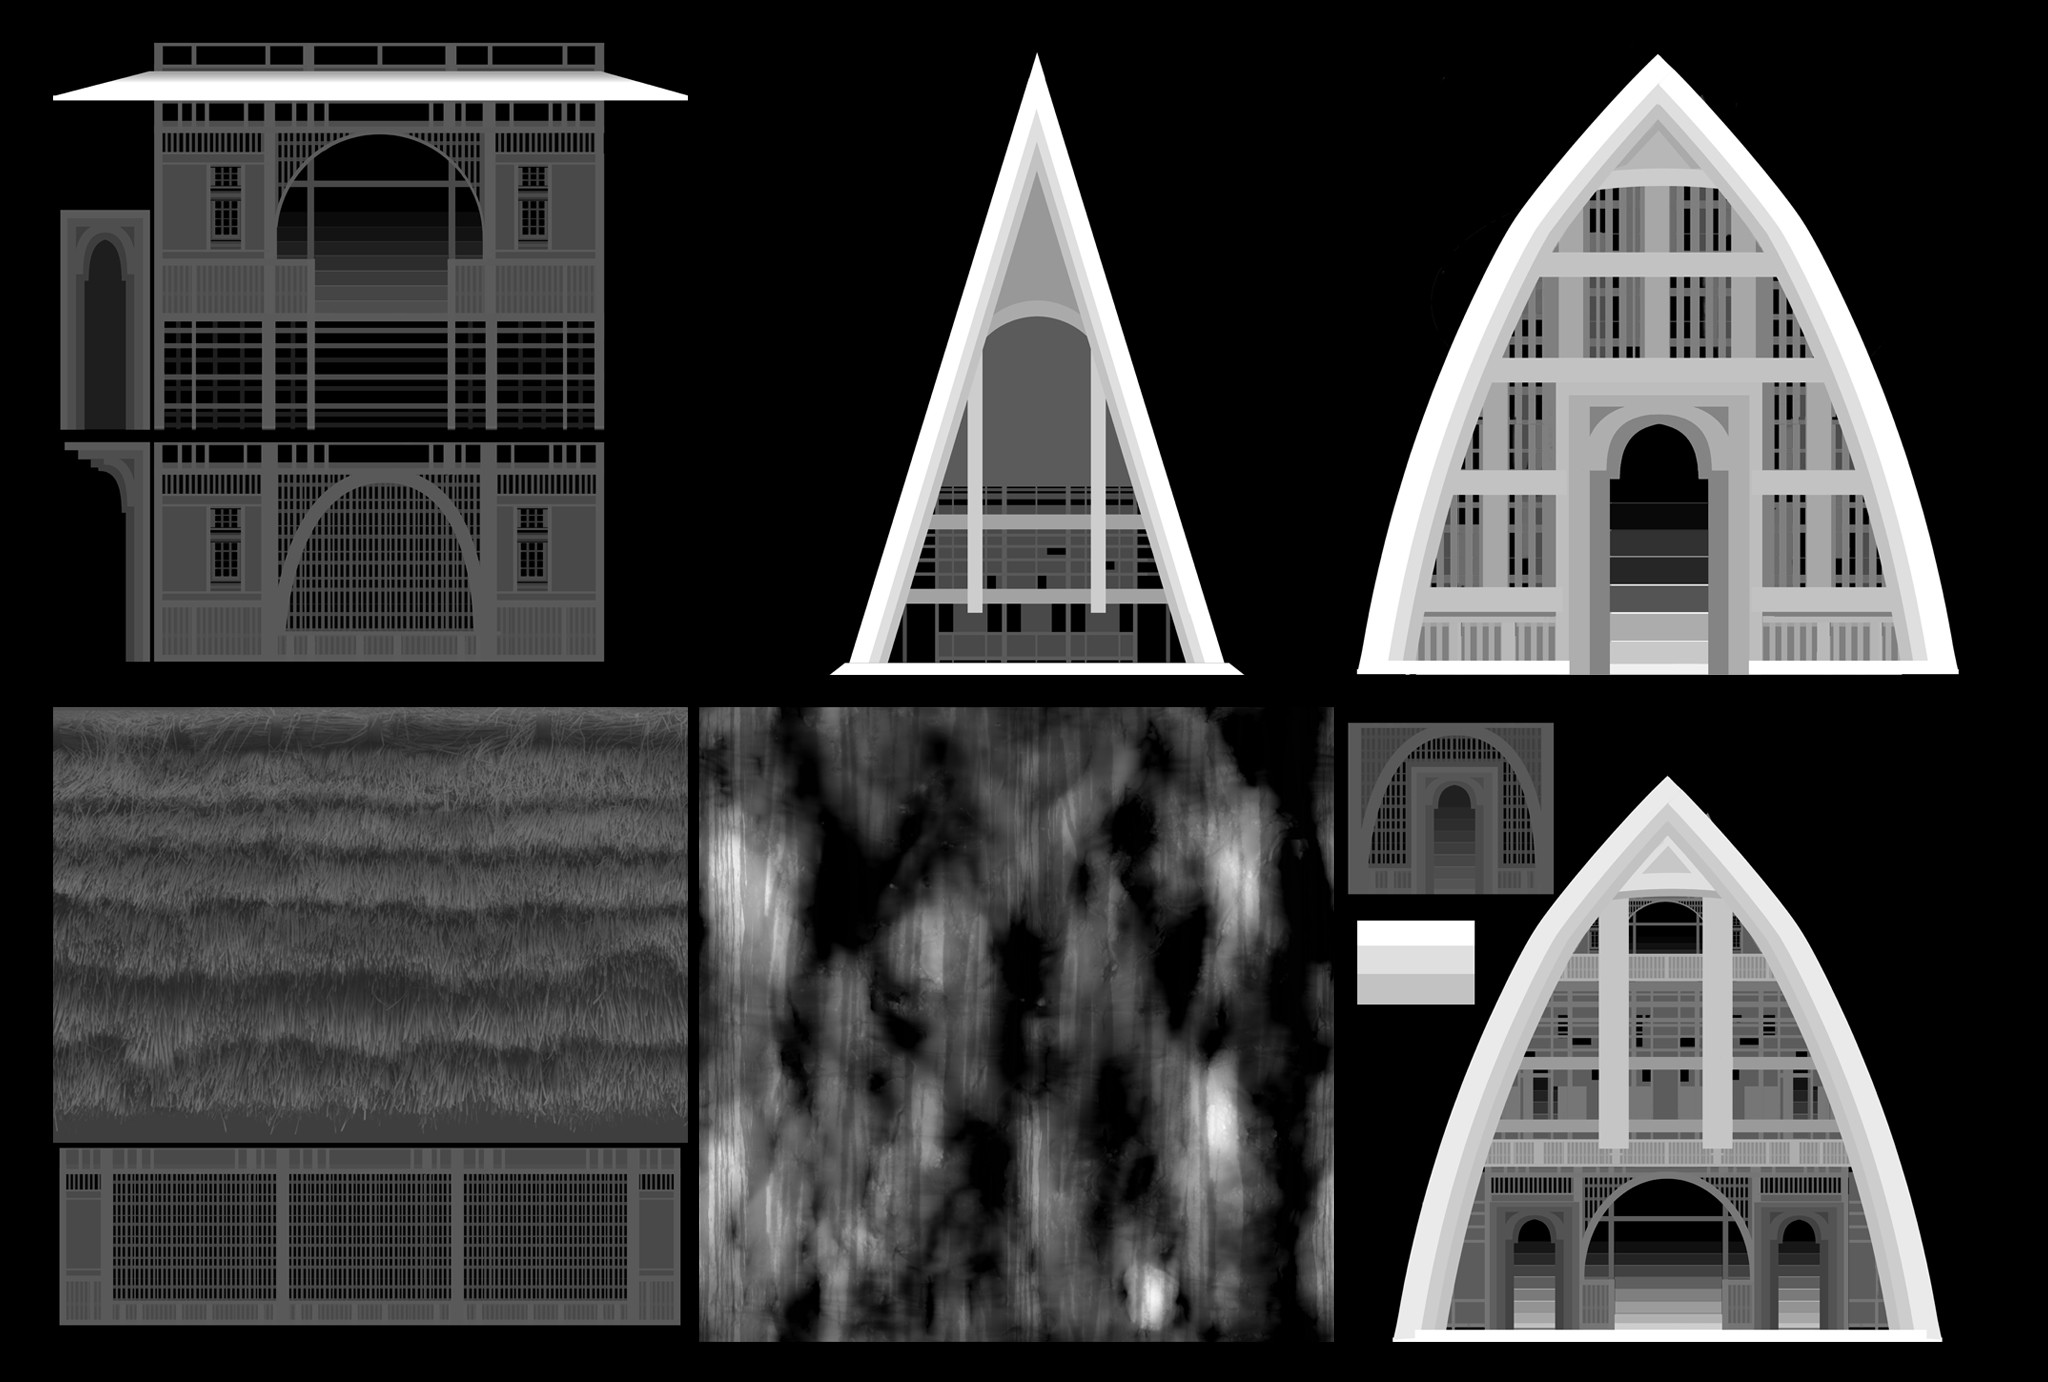 Displacement maps